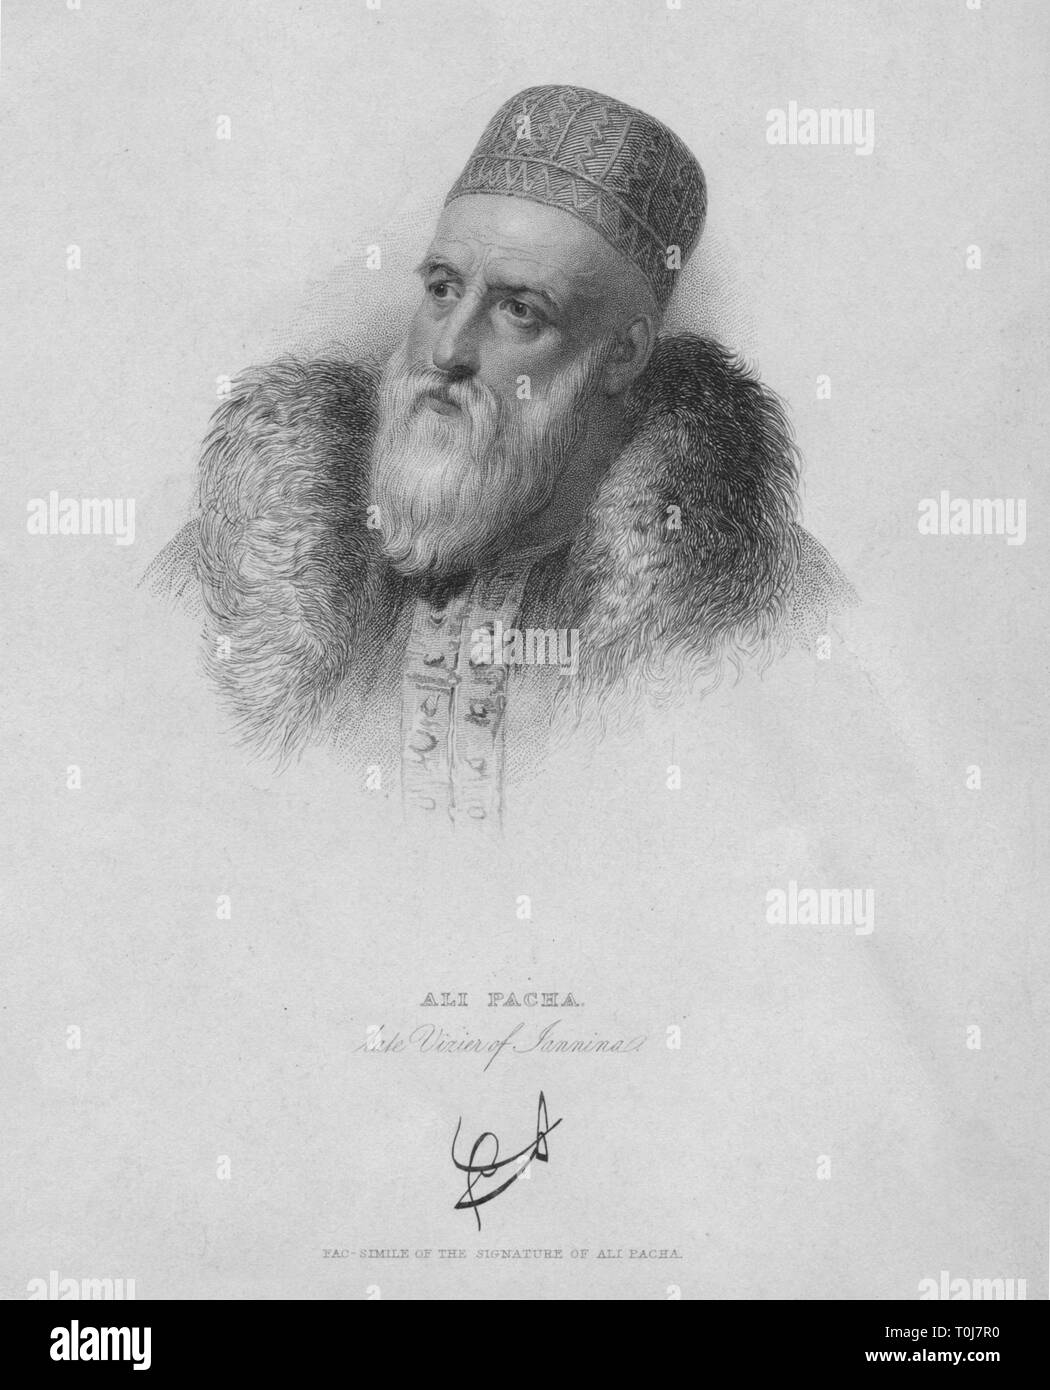 'Ali Pacha', (1832). Portrait of Ali Pasha of Tepelena (1740-1822), the Lion of Yannina, Albanian ruler who served as an Ottoman pasha of the western part of Rumelia (Balkans). His rule was characterised by by murders and extortions, and he was assassinated in the Monastery of St Panteleimon in Ioannina, northern Greece. [John Murray, London, 1832] - Stock Image